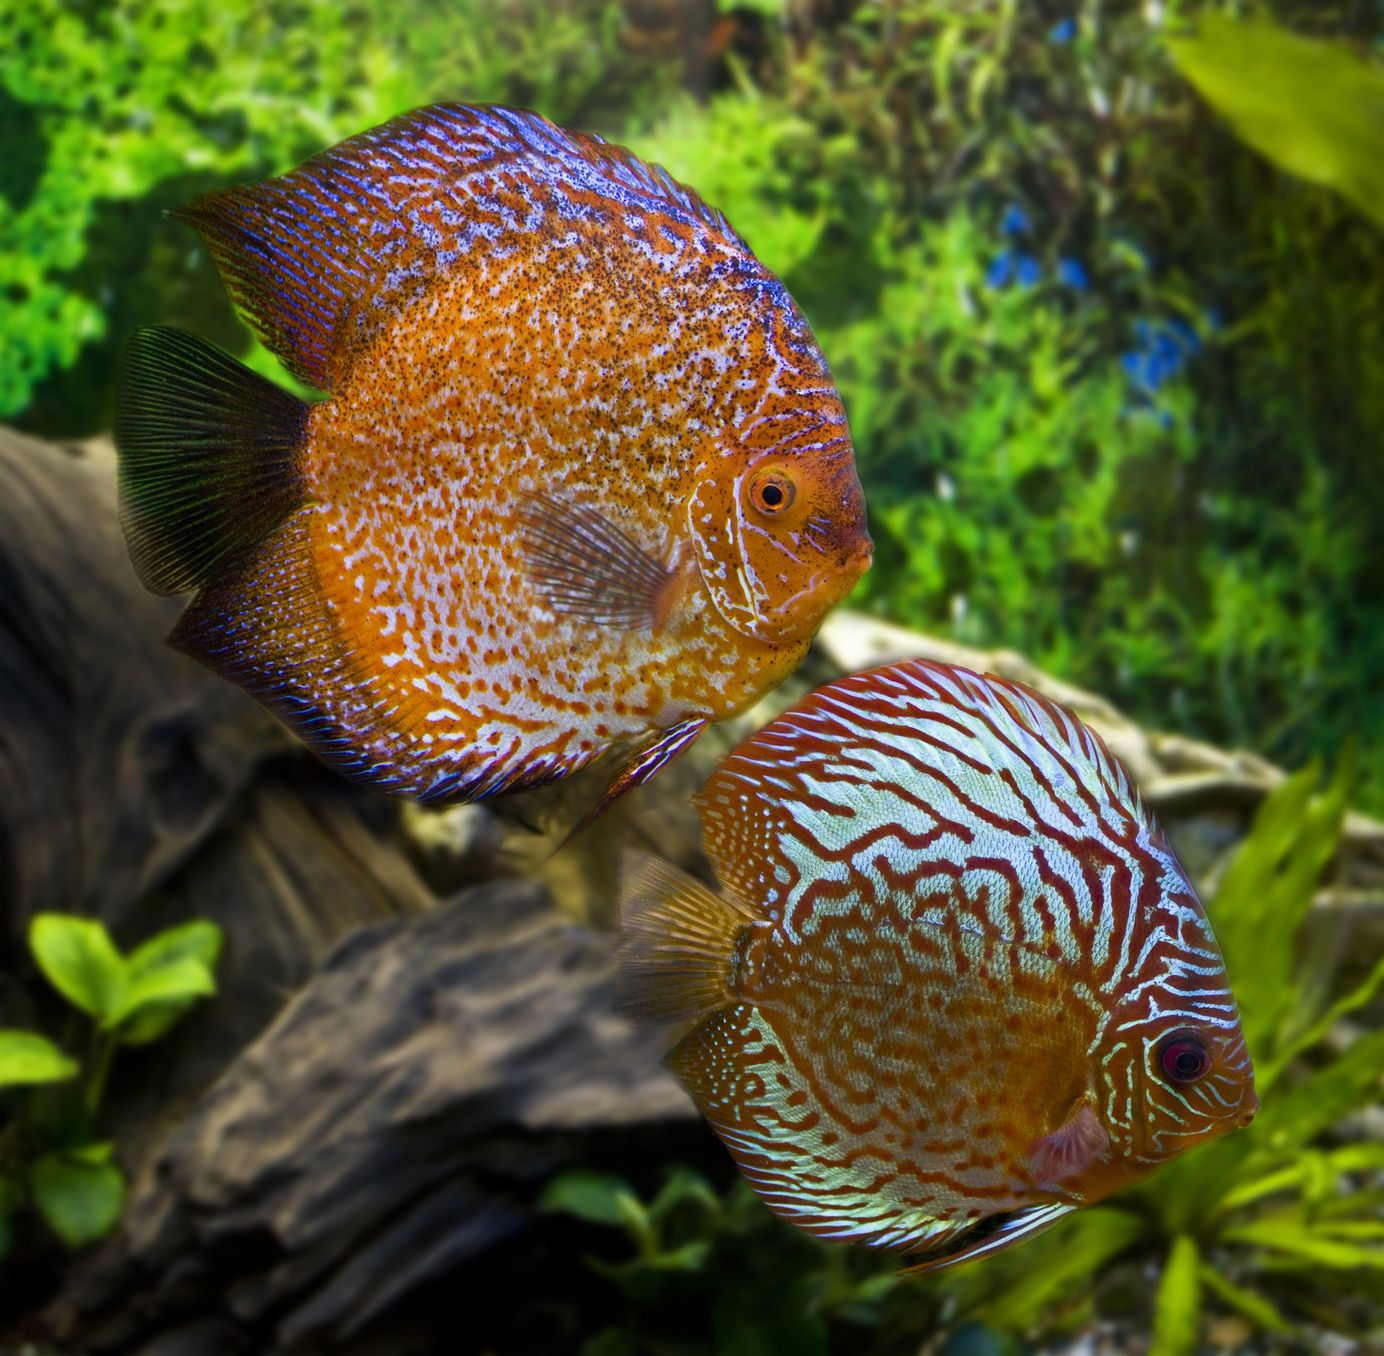 Discus fish are by far the most popular of the South American cichlids